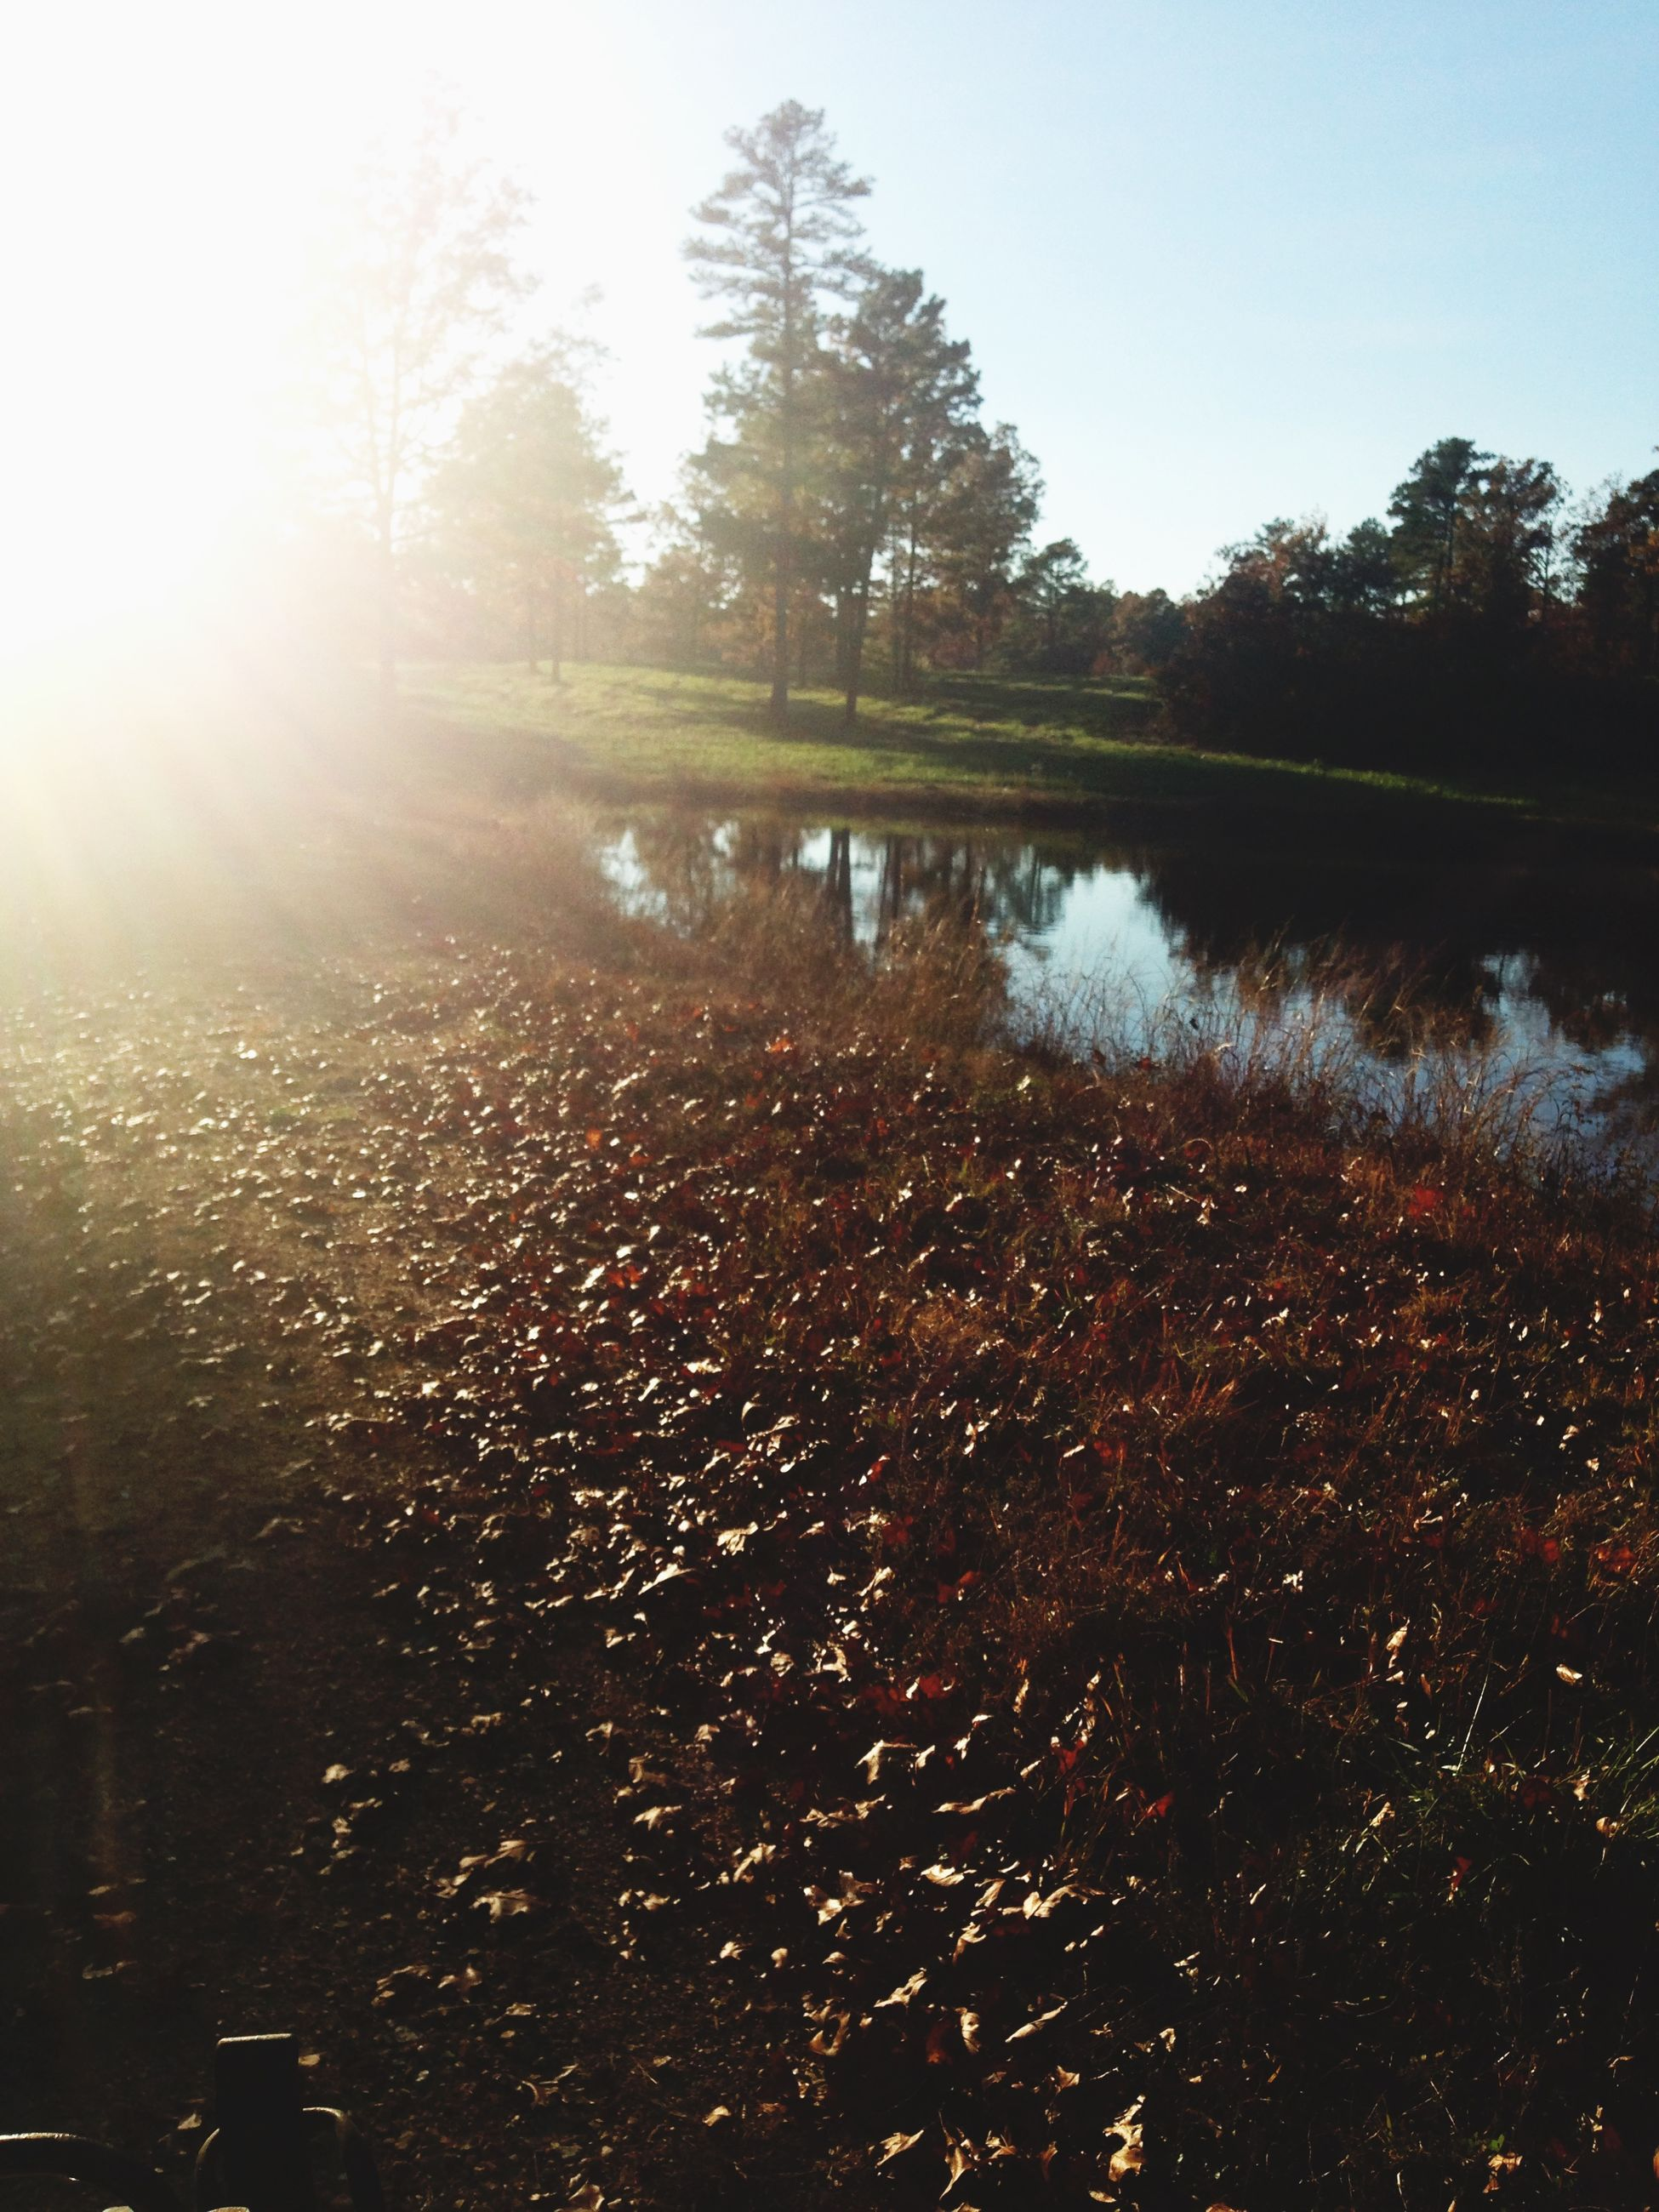 tree, water, sun, reflection, sunbeam, sunlight, lake, clear sky, lens flare, tranquility, river, tranquil scene, nature, beauty in nature, scenics, growth, outdoors, sunny, bright, sky